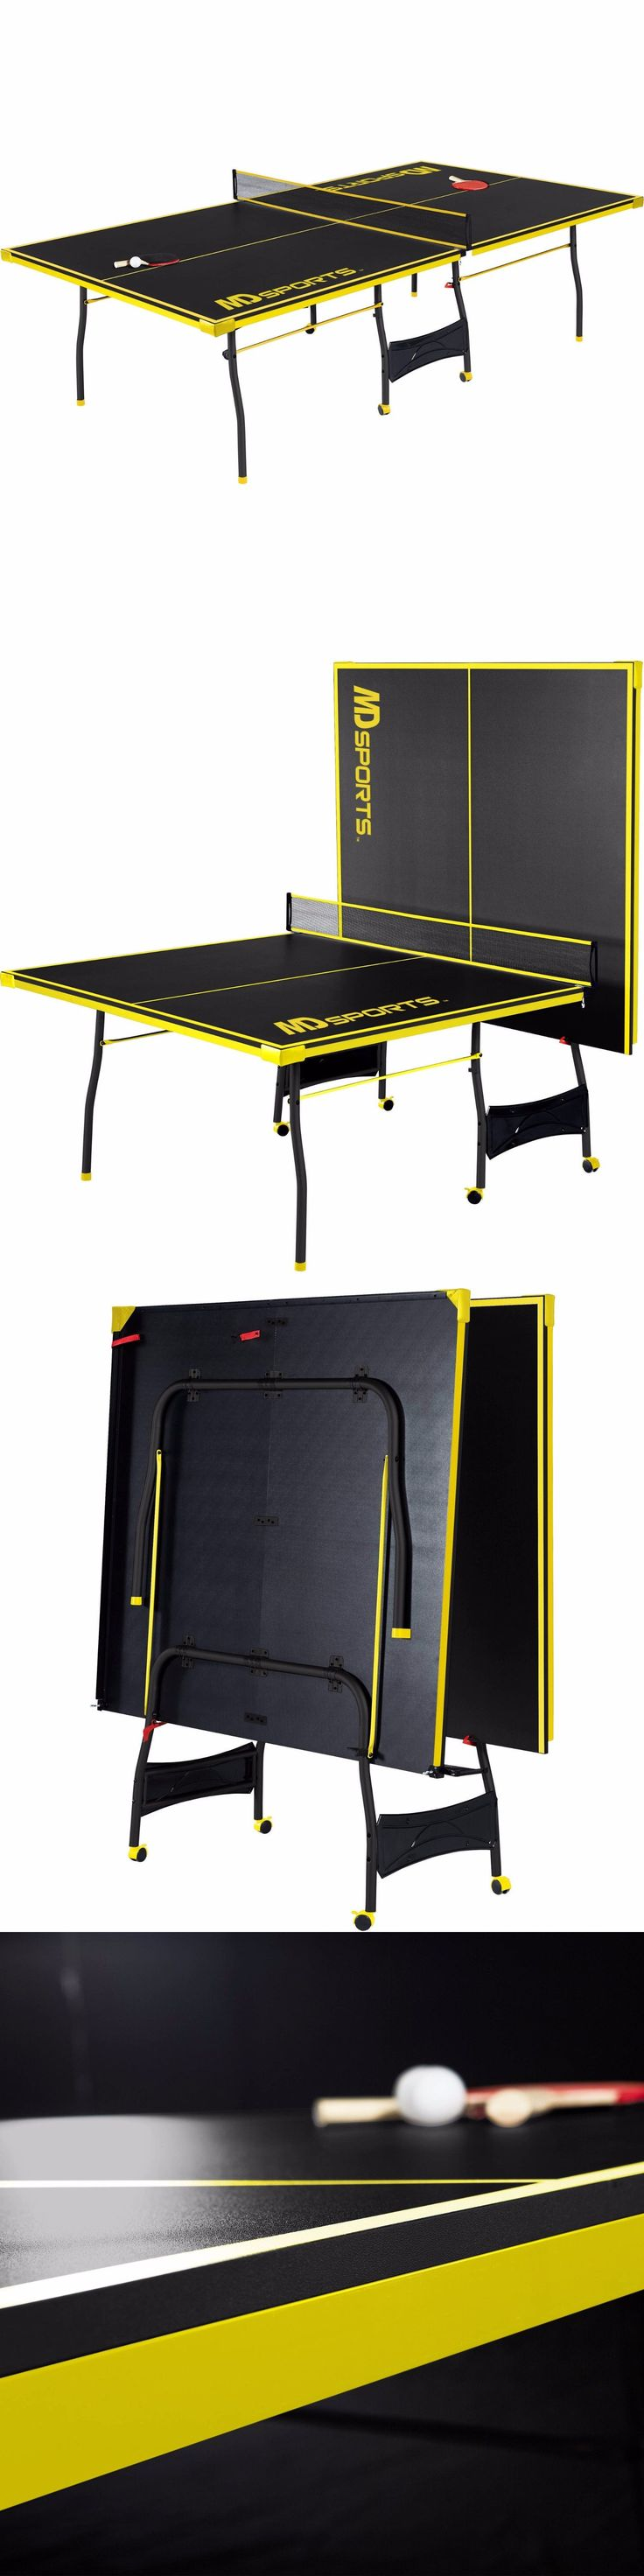 Tables 97075: Official Size Table Tennis Table Black/Yellow Folding Game Table Accessory Set BUY IT NOW ONLY: $139.78